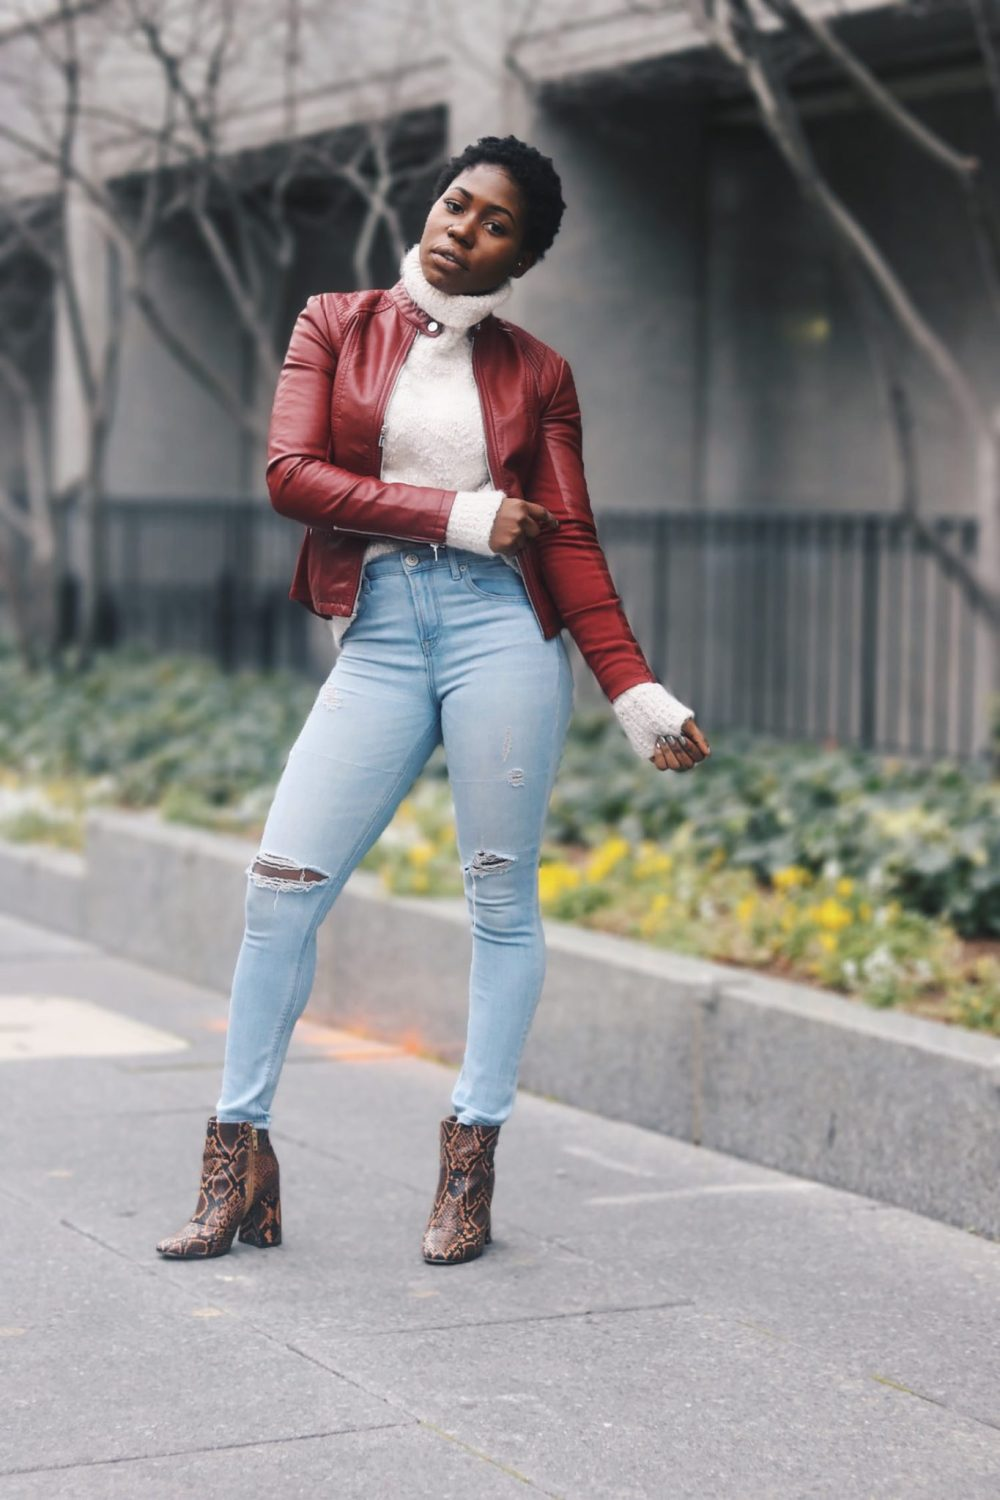 style-synopsis-destroyed-high-wasit-jeans-snake-skin-boots